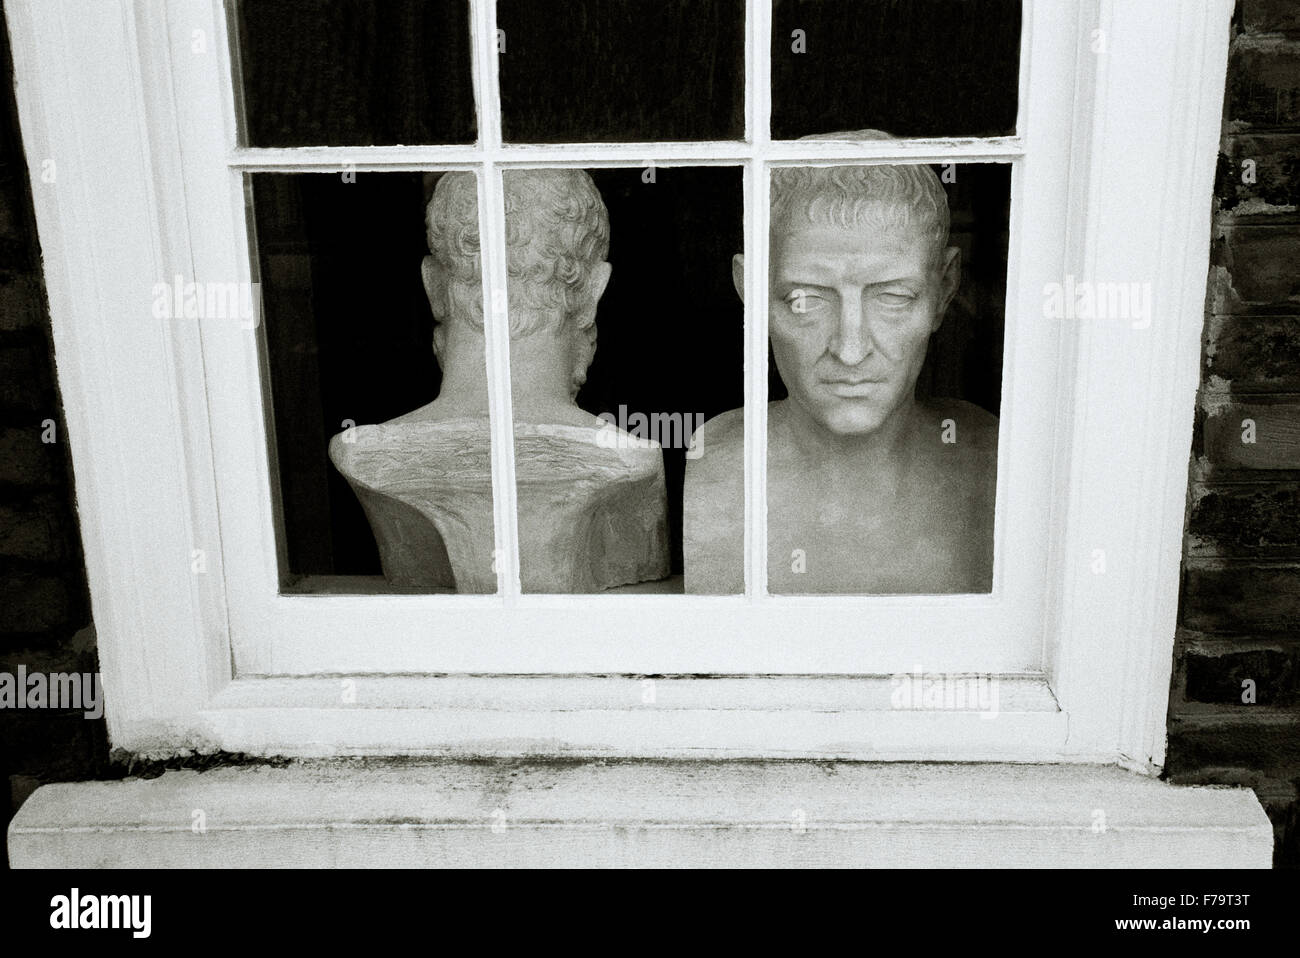 London in England in Great Britain in the United Kingdom UK. Head Philosophy Philosopher Culture History Sculpture - Stock Image